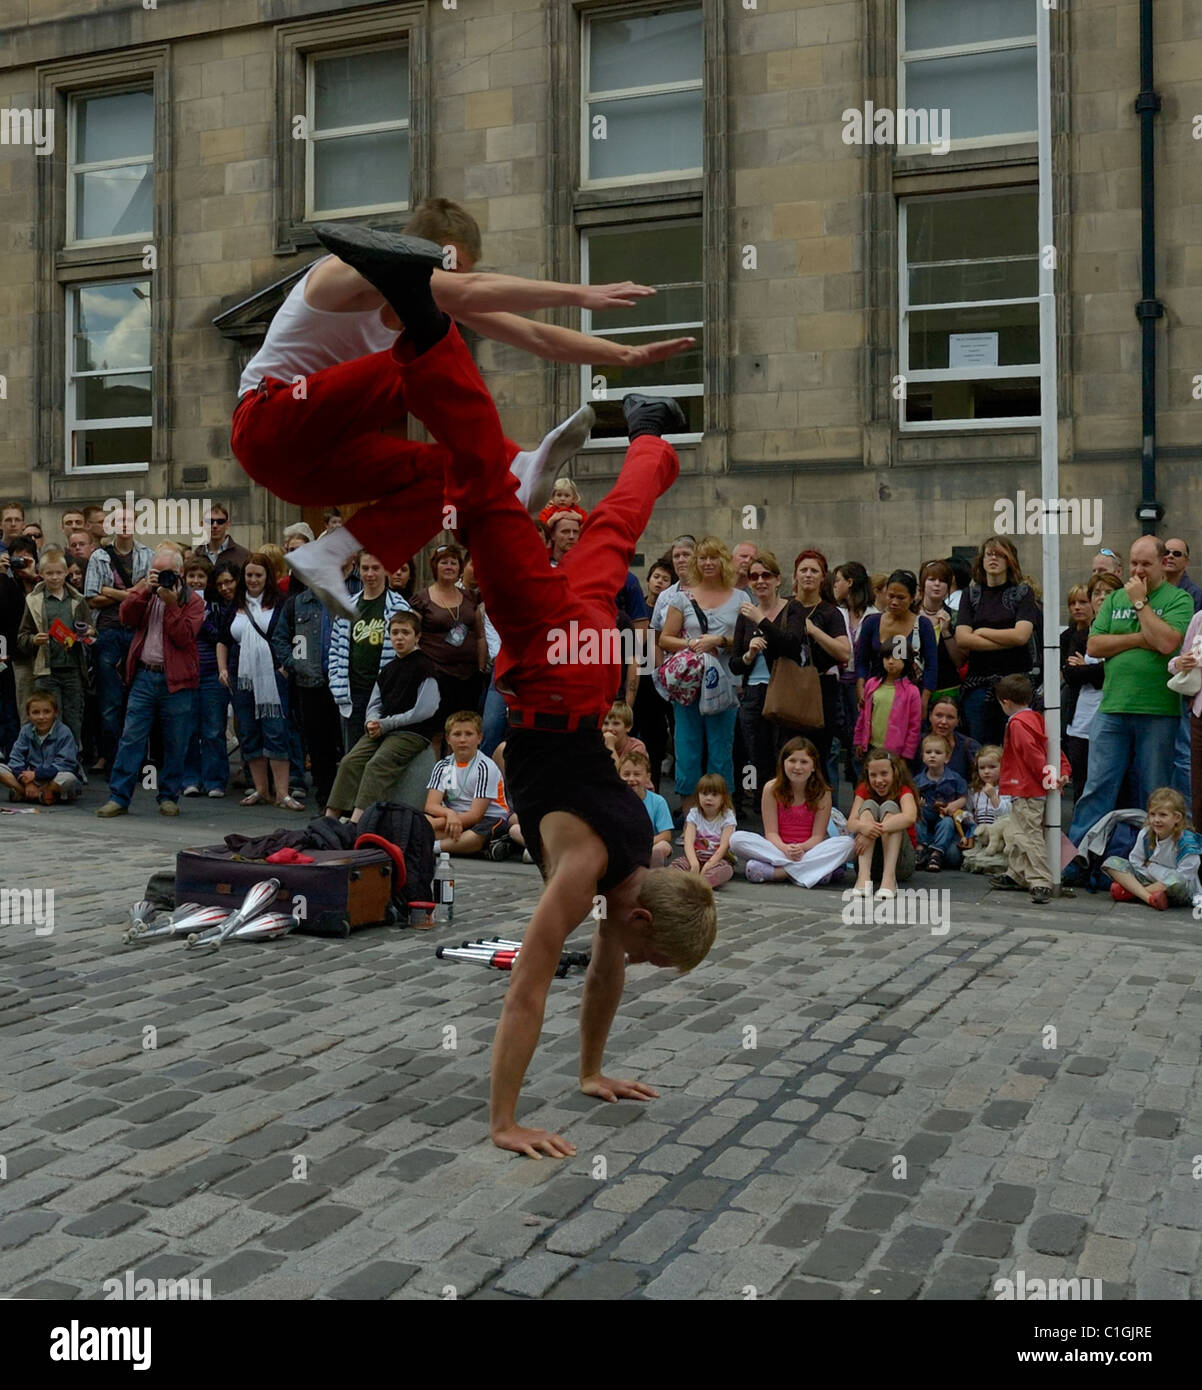 edinburgh-aug-9-two-gymnasts-perform-on-the-street-during-the-edinburgh-C1GJRE.jpg